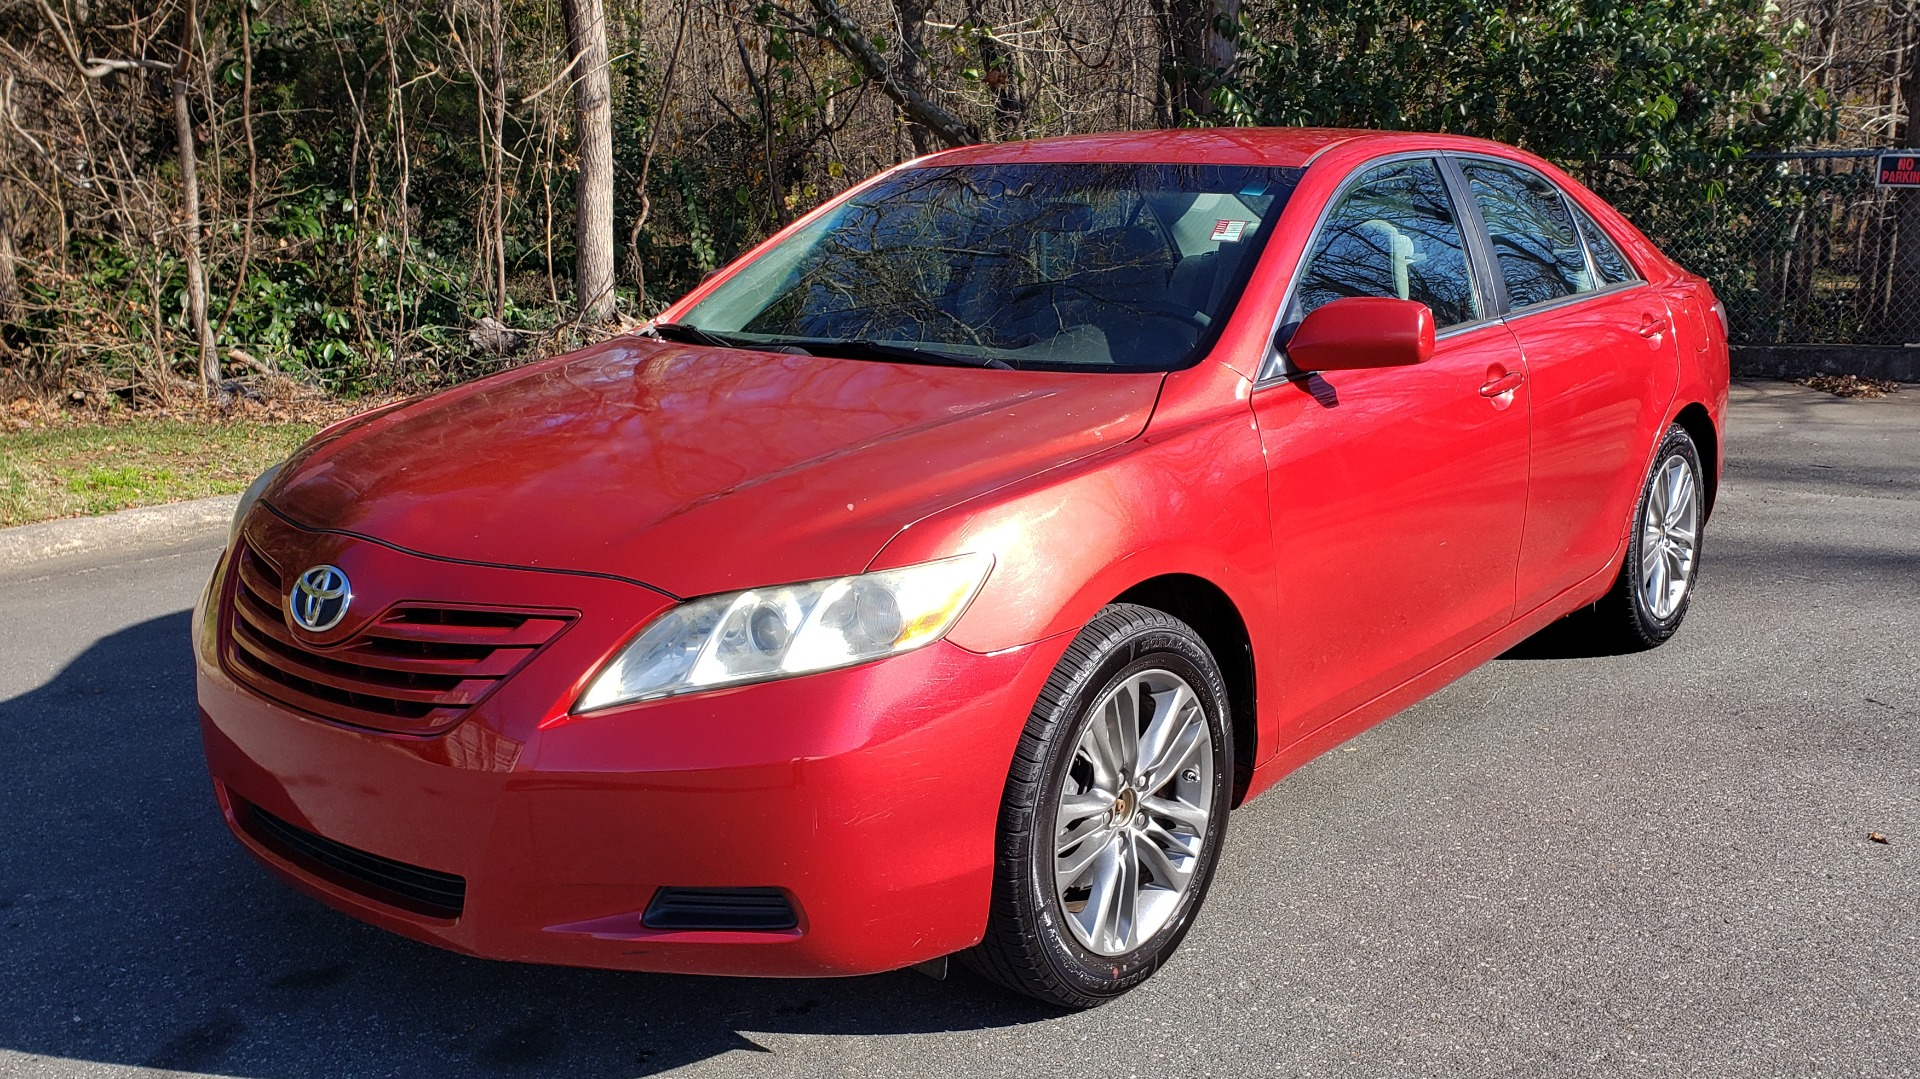 Used 2009 Toyota CAMRY LE / 2.4L SEDAN / FWD / 4-CYL / AUTO / CLOTH / CLEAN for sale Sold at Formula Imports in Charlotte NC 28227 1